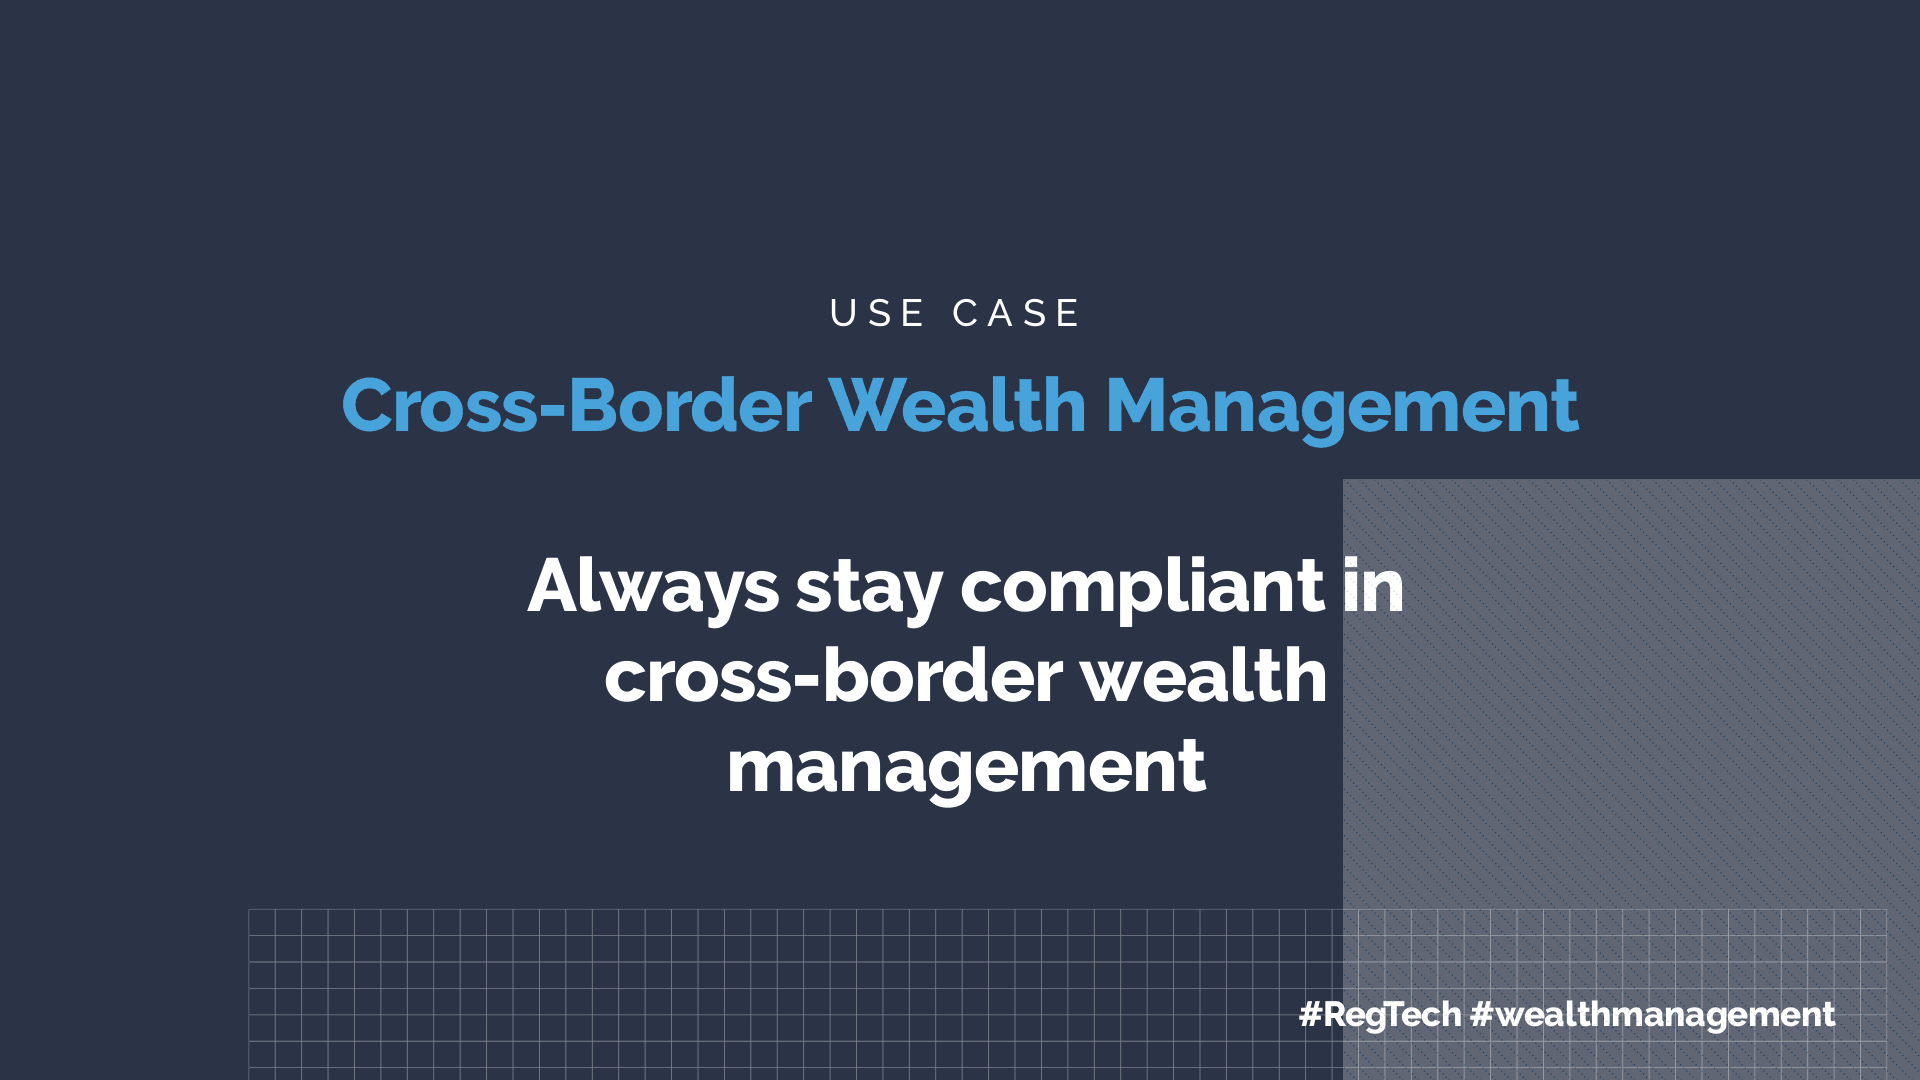 Cross-Border Wealth Management